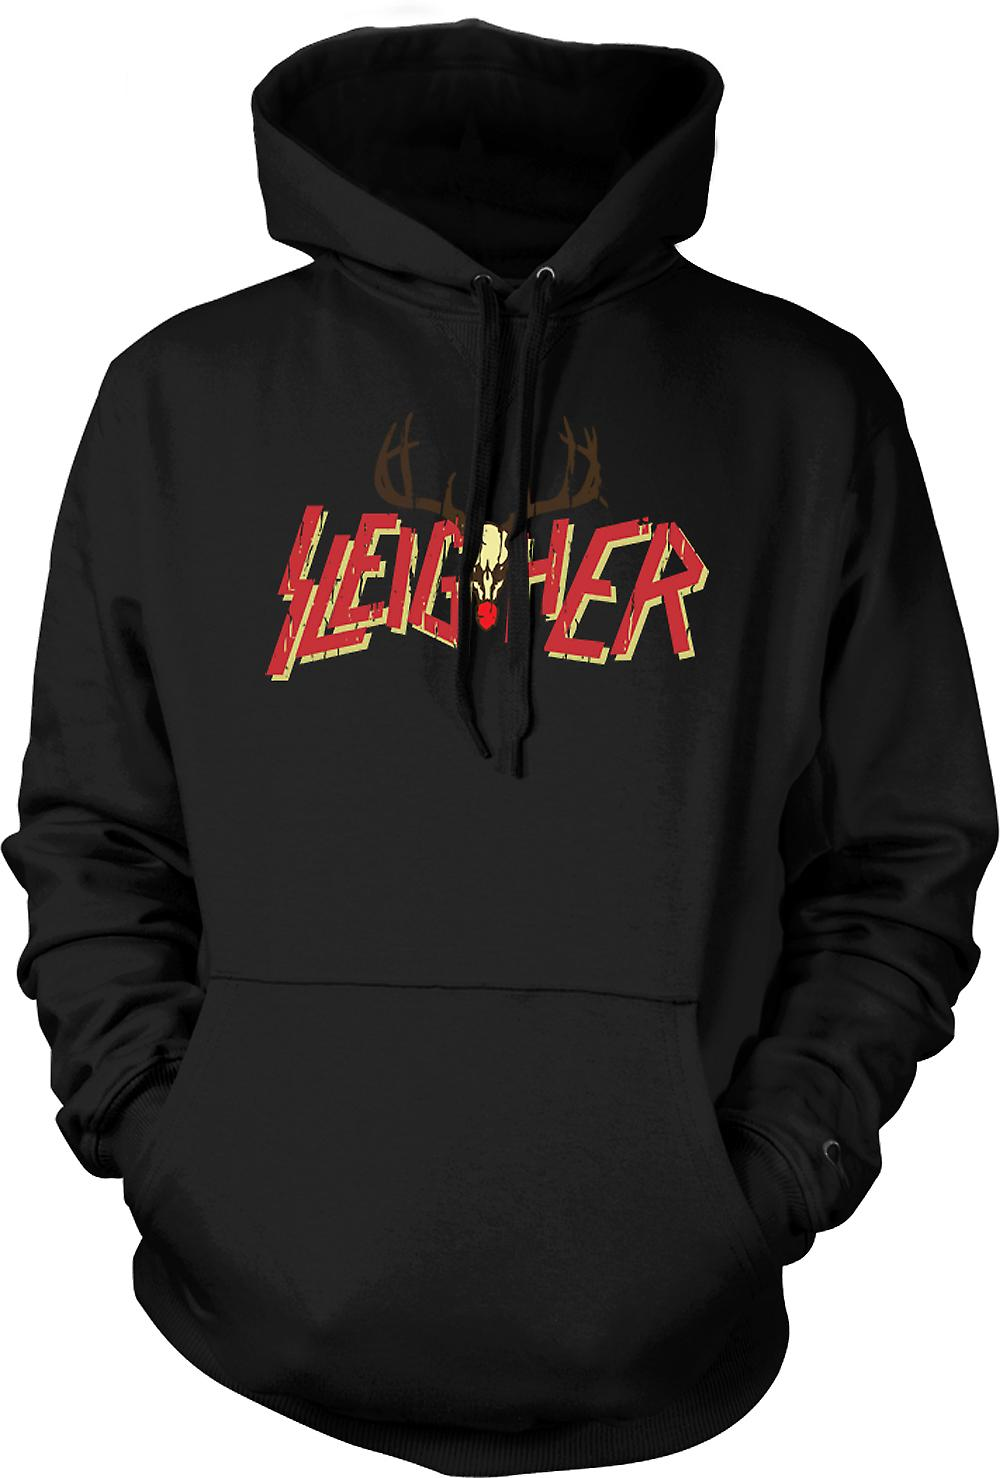 Mens Hoodie - Sleigher Rock Metal Inspired Christmas